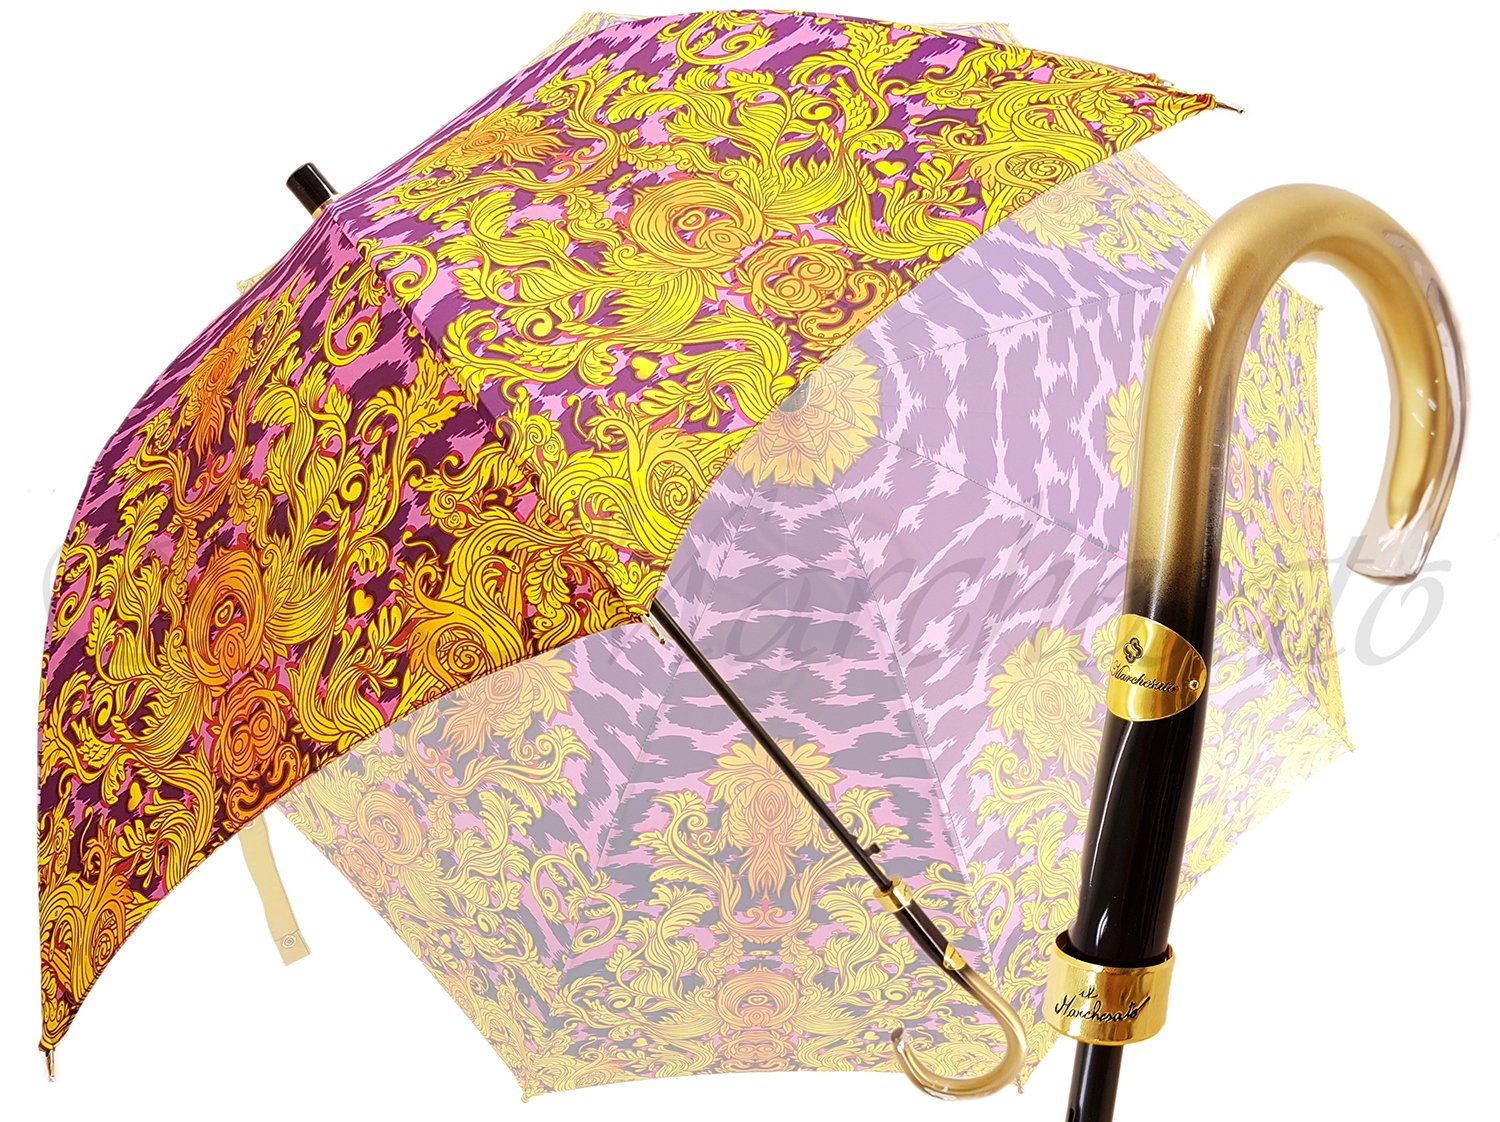 Beautifull Umbrella Features a Lilac & Gold Abstract Leopard Design - il-marchesato